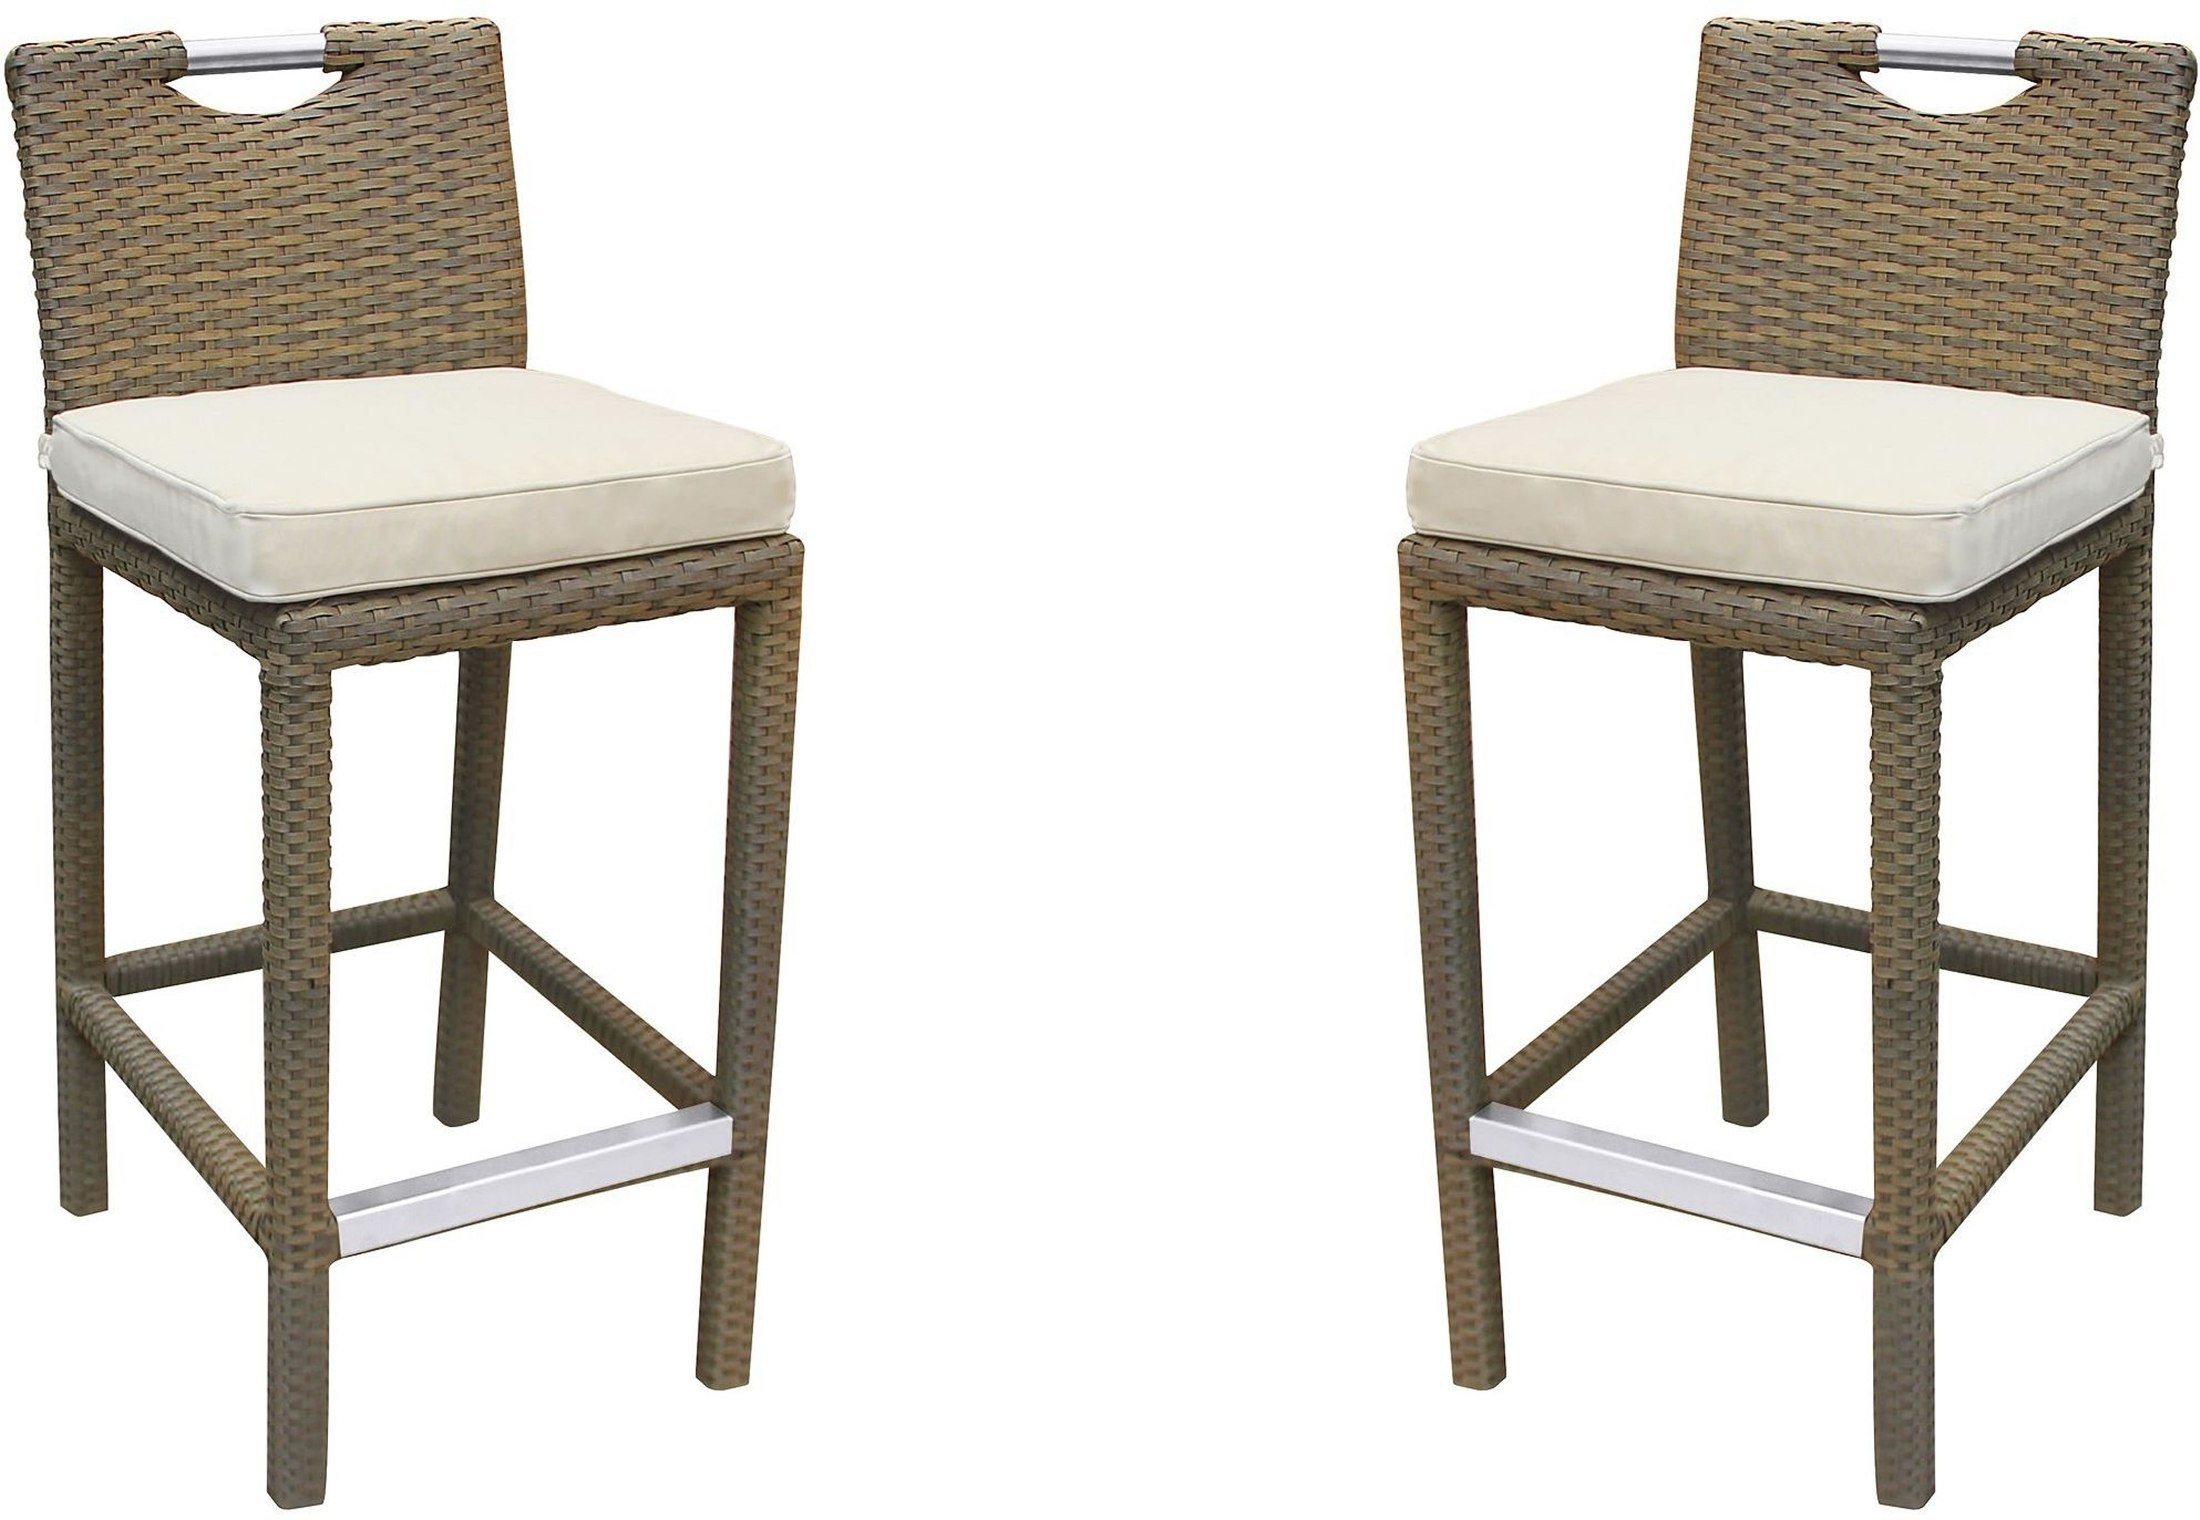 Stewart Outdoor Cream Rattan Patio Barstool Set Of 2 From